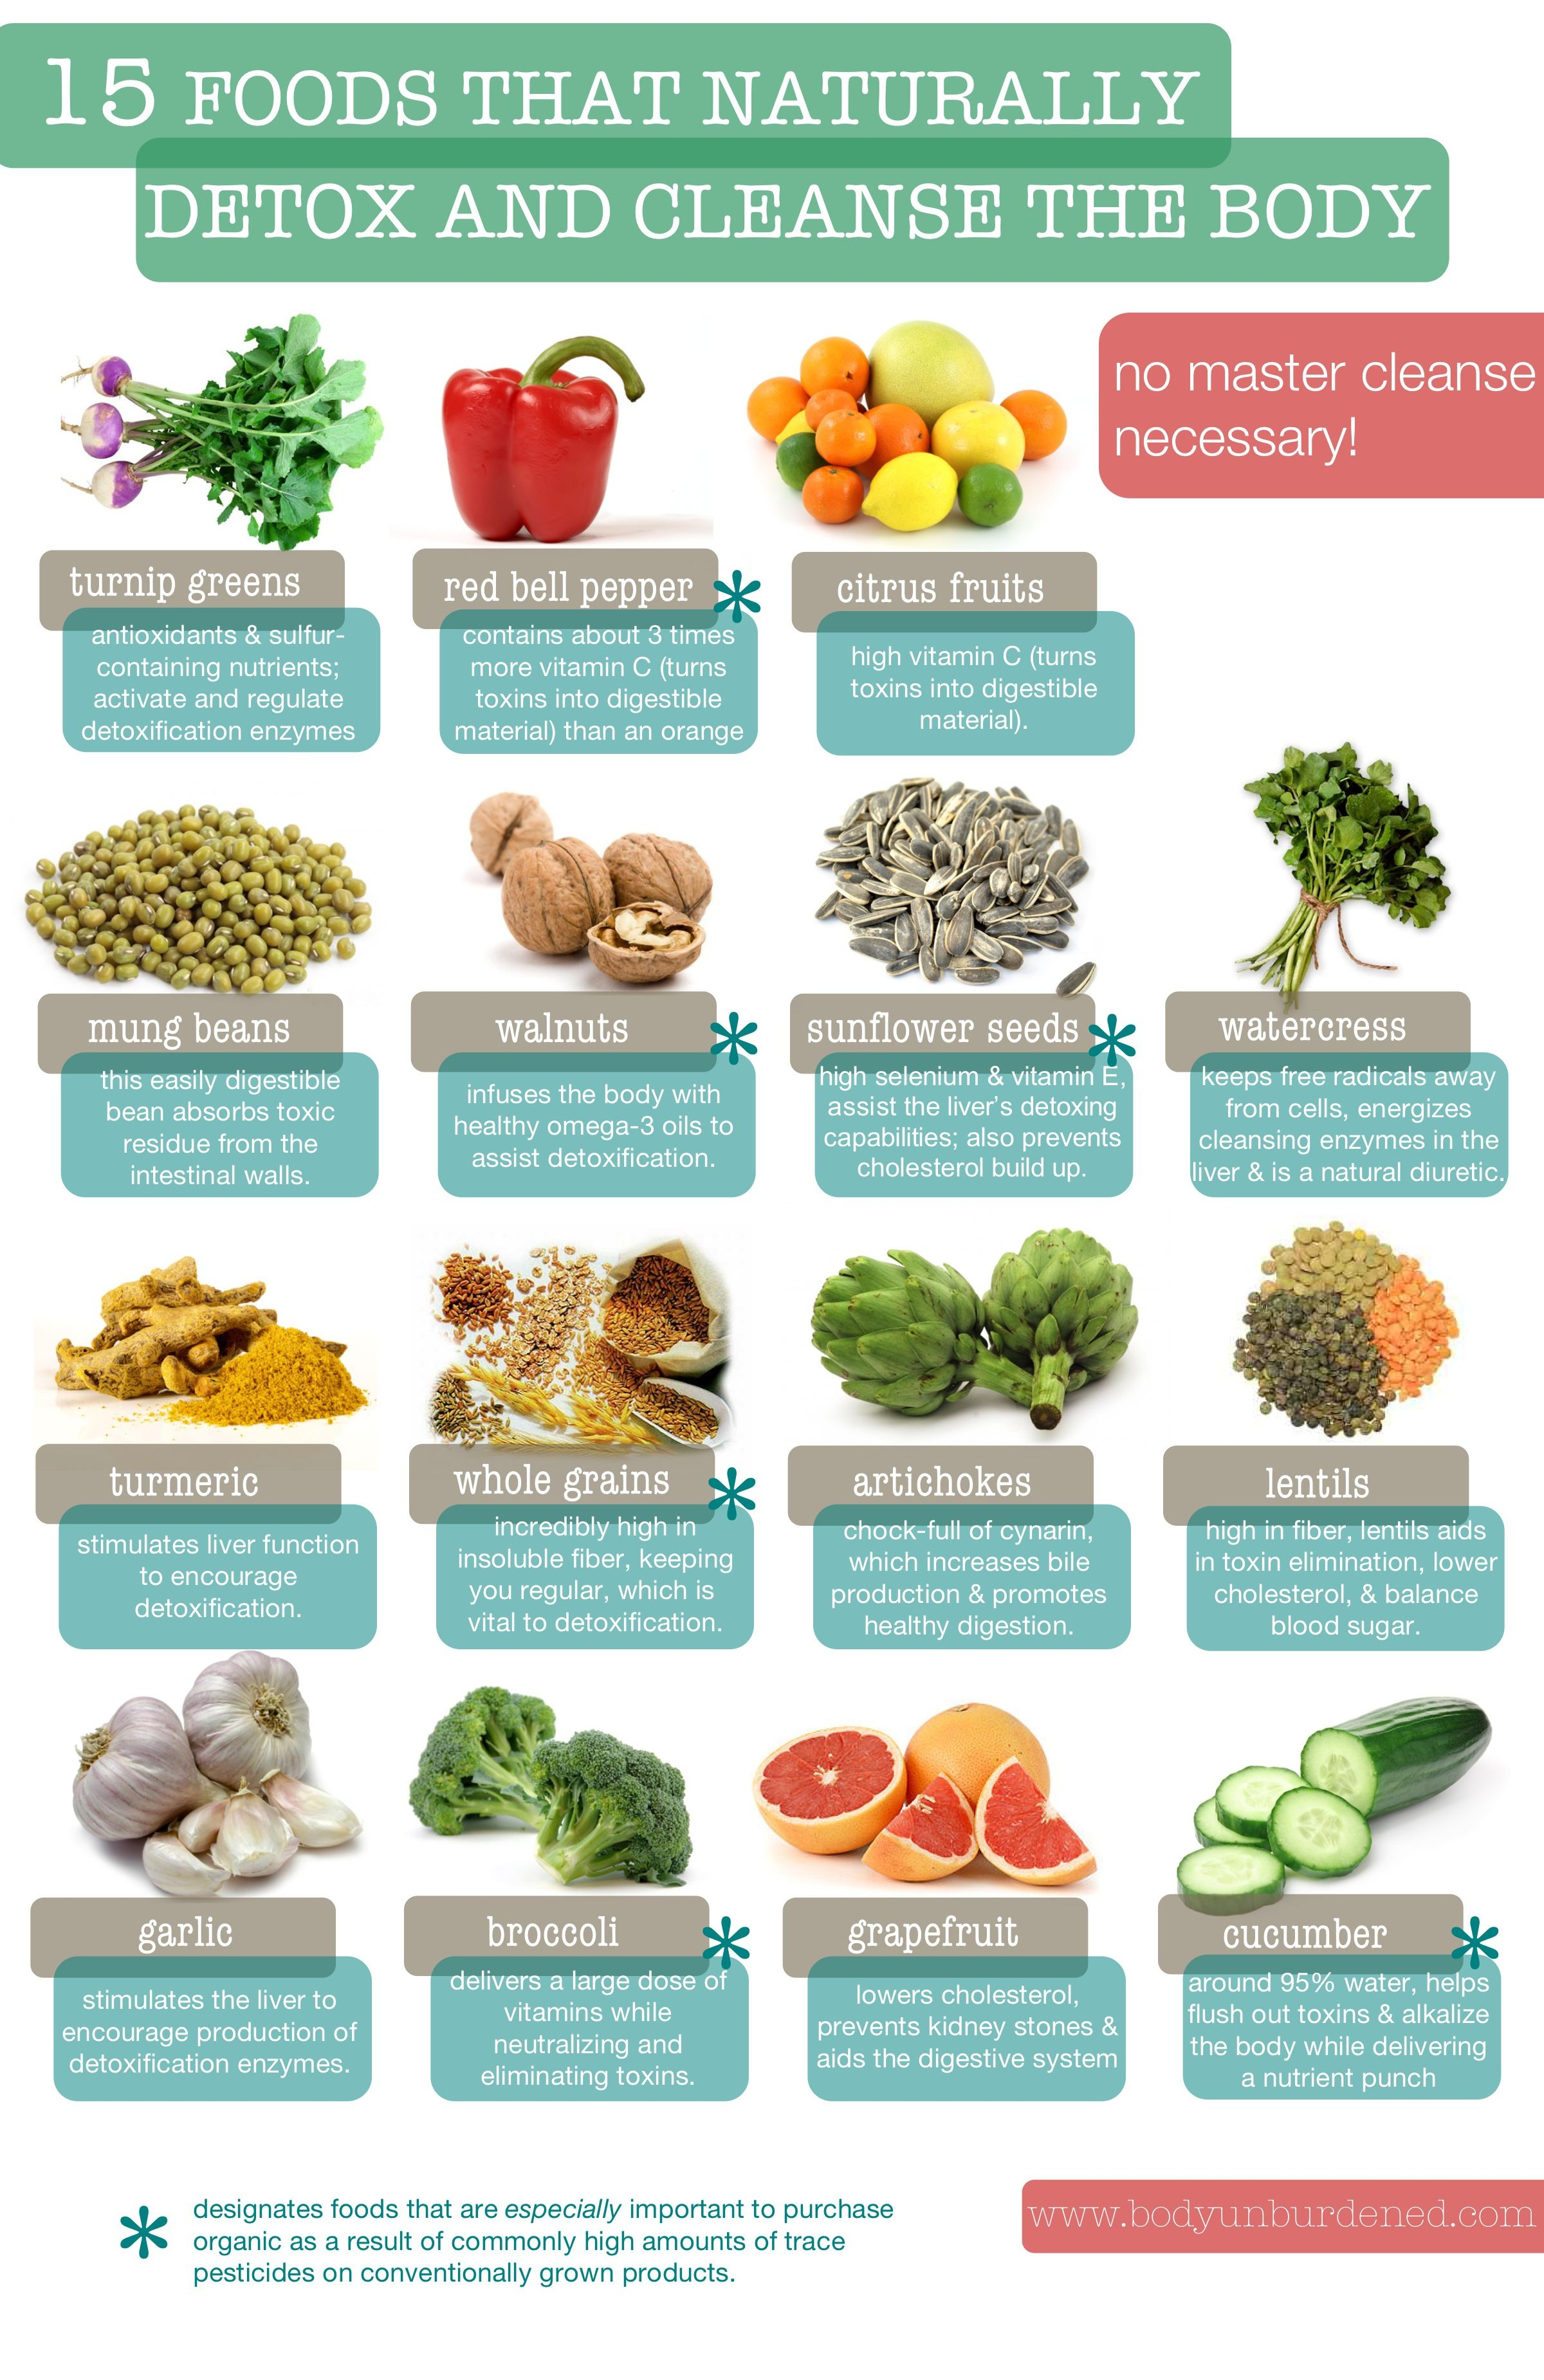 15 foods that naturally detox and cleanse your body.